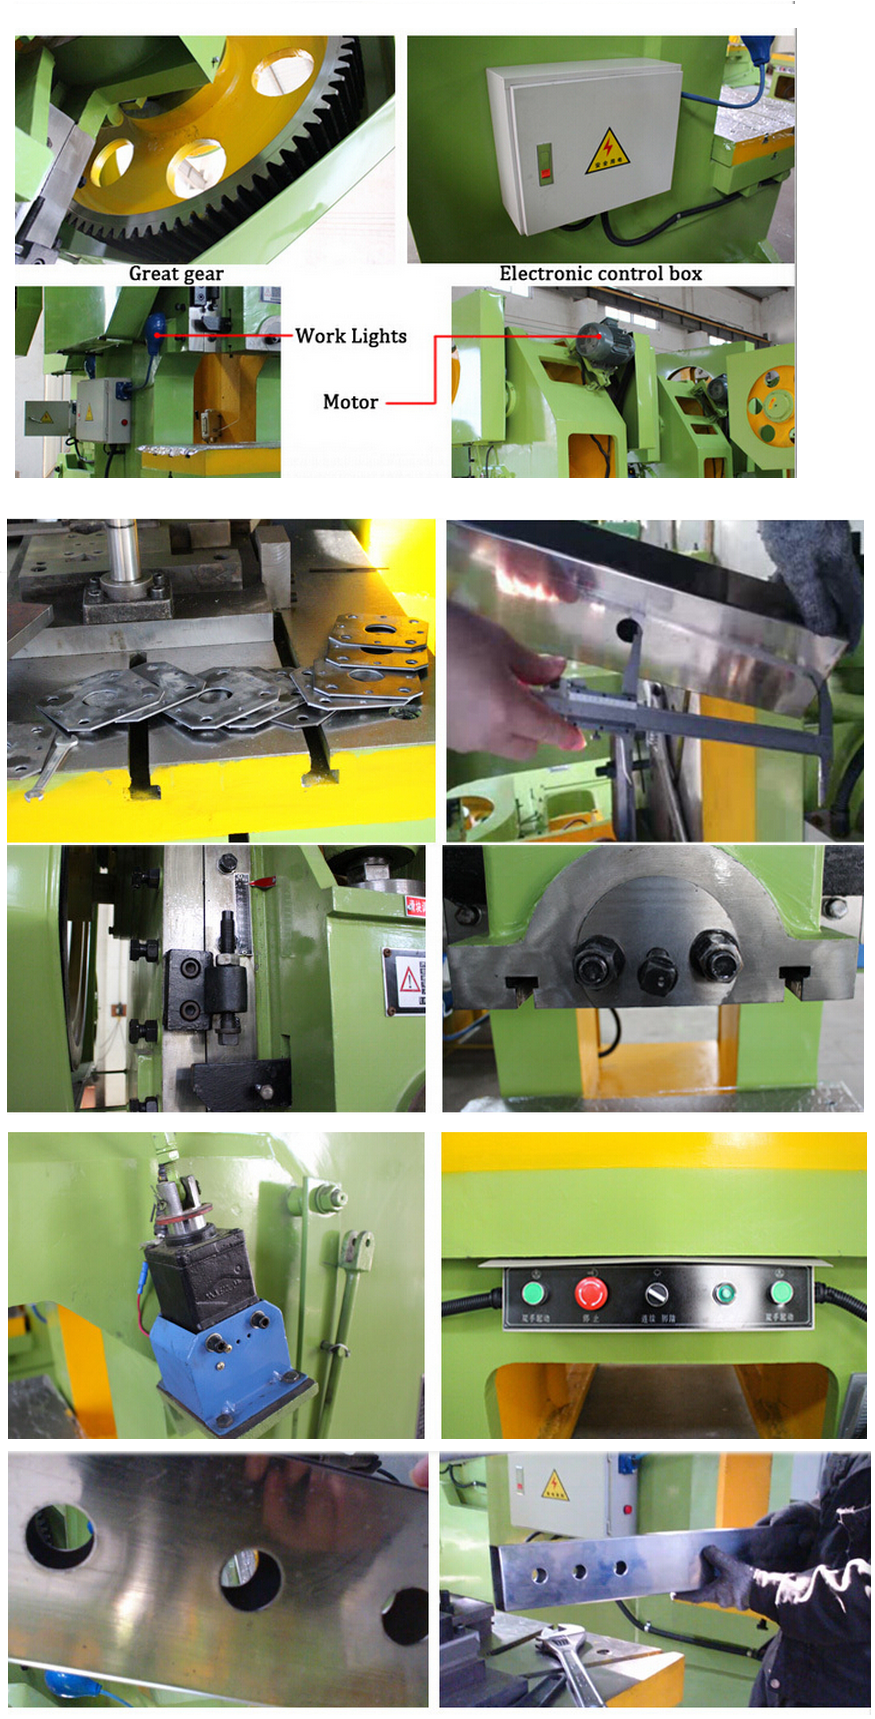 wholesale J23 Series Mechanical Power Press, 10t storke ajust punching machine ,Punch Press Machine